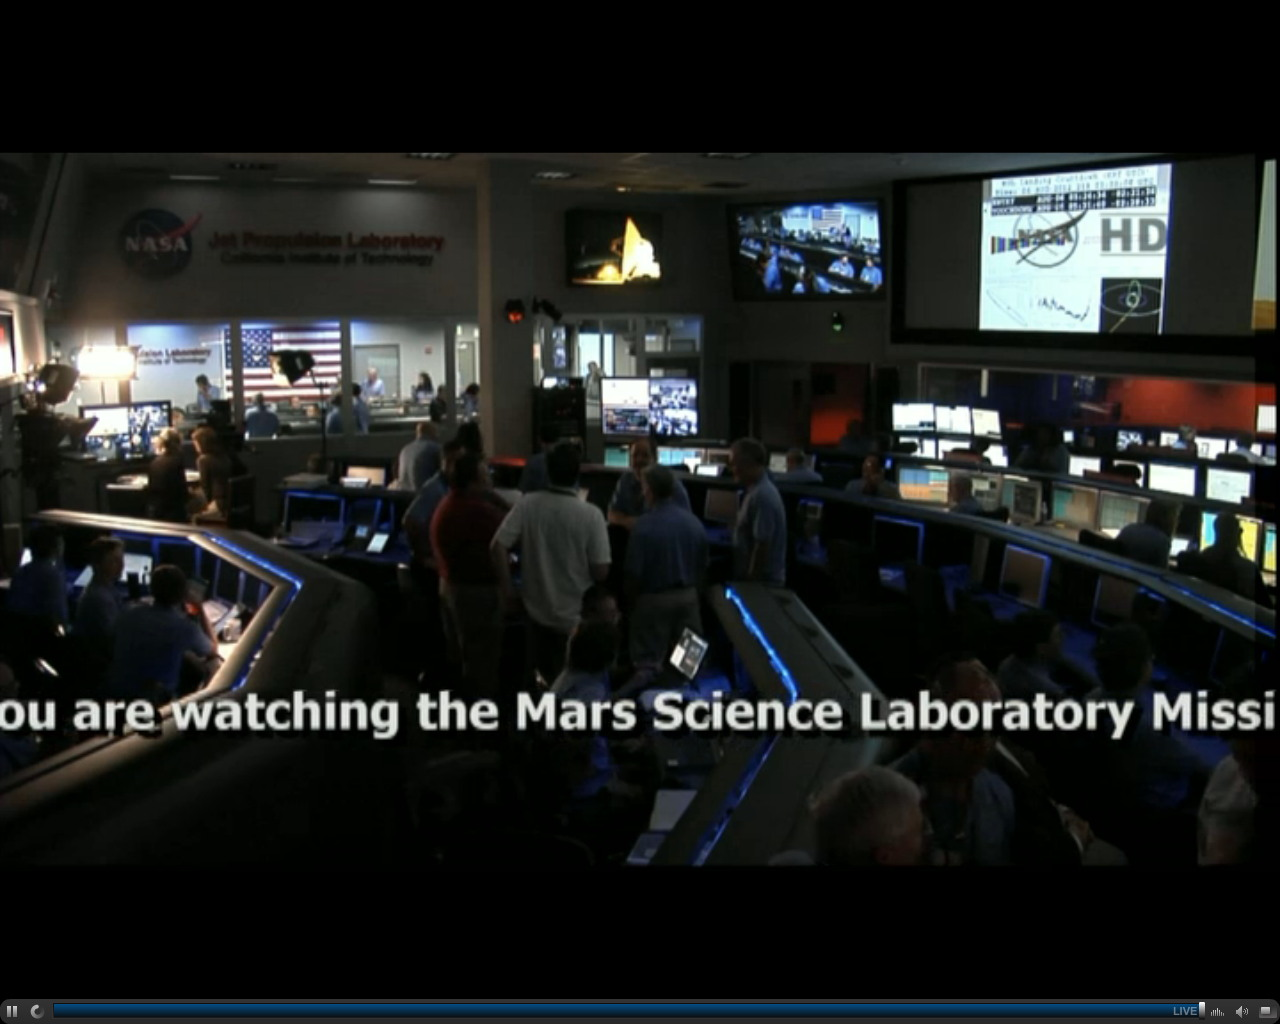 Mars Science Laboratory Mission Support Area